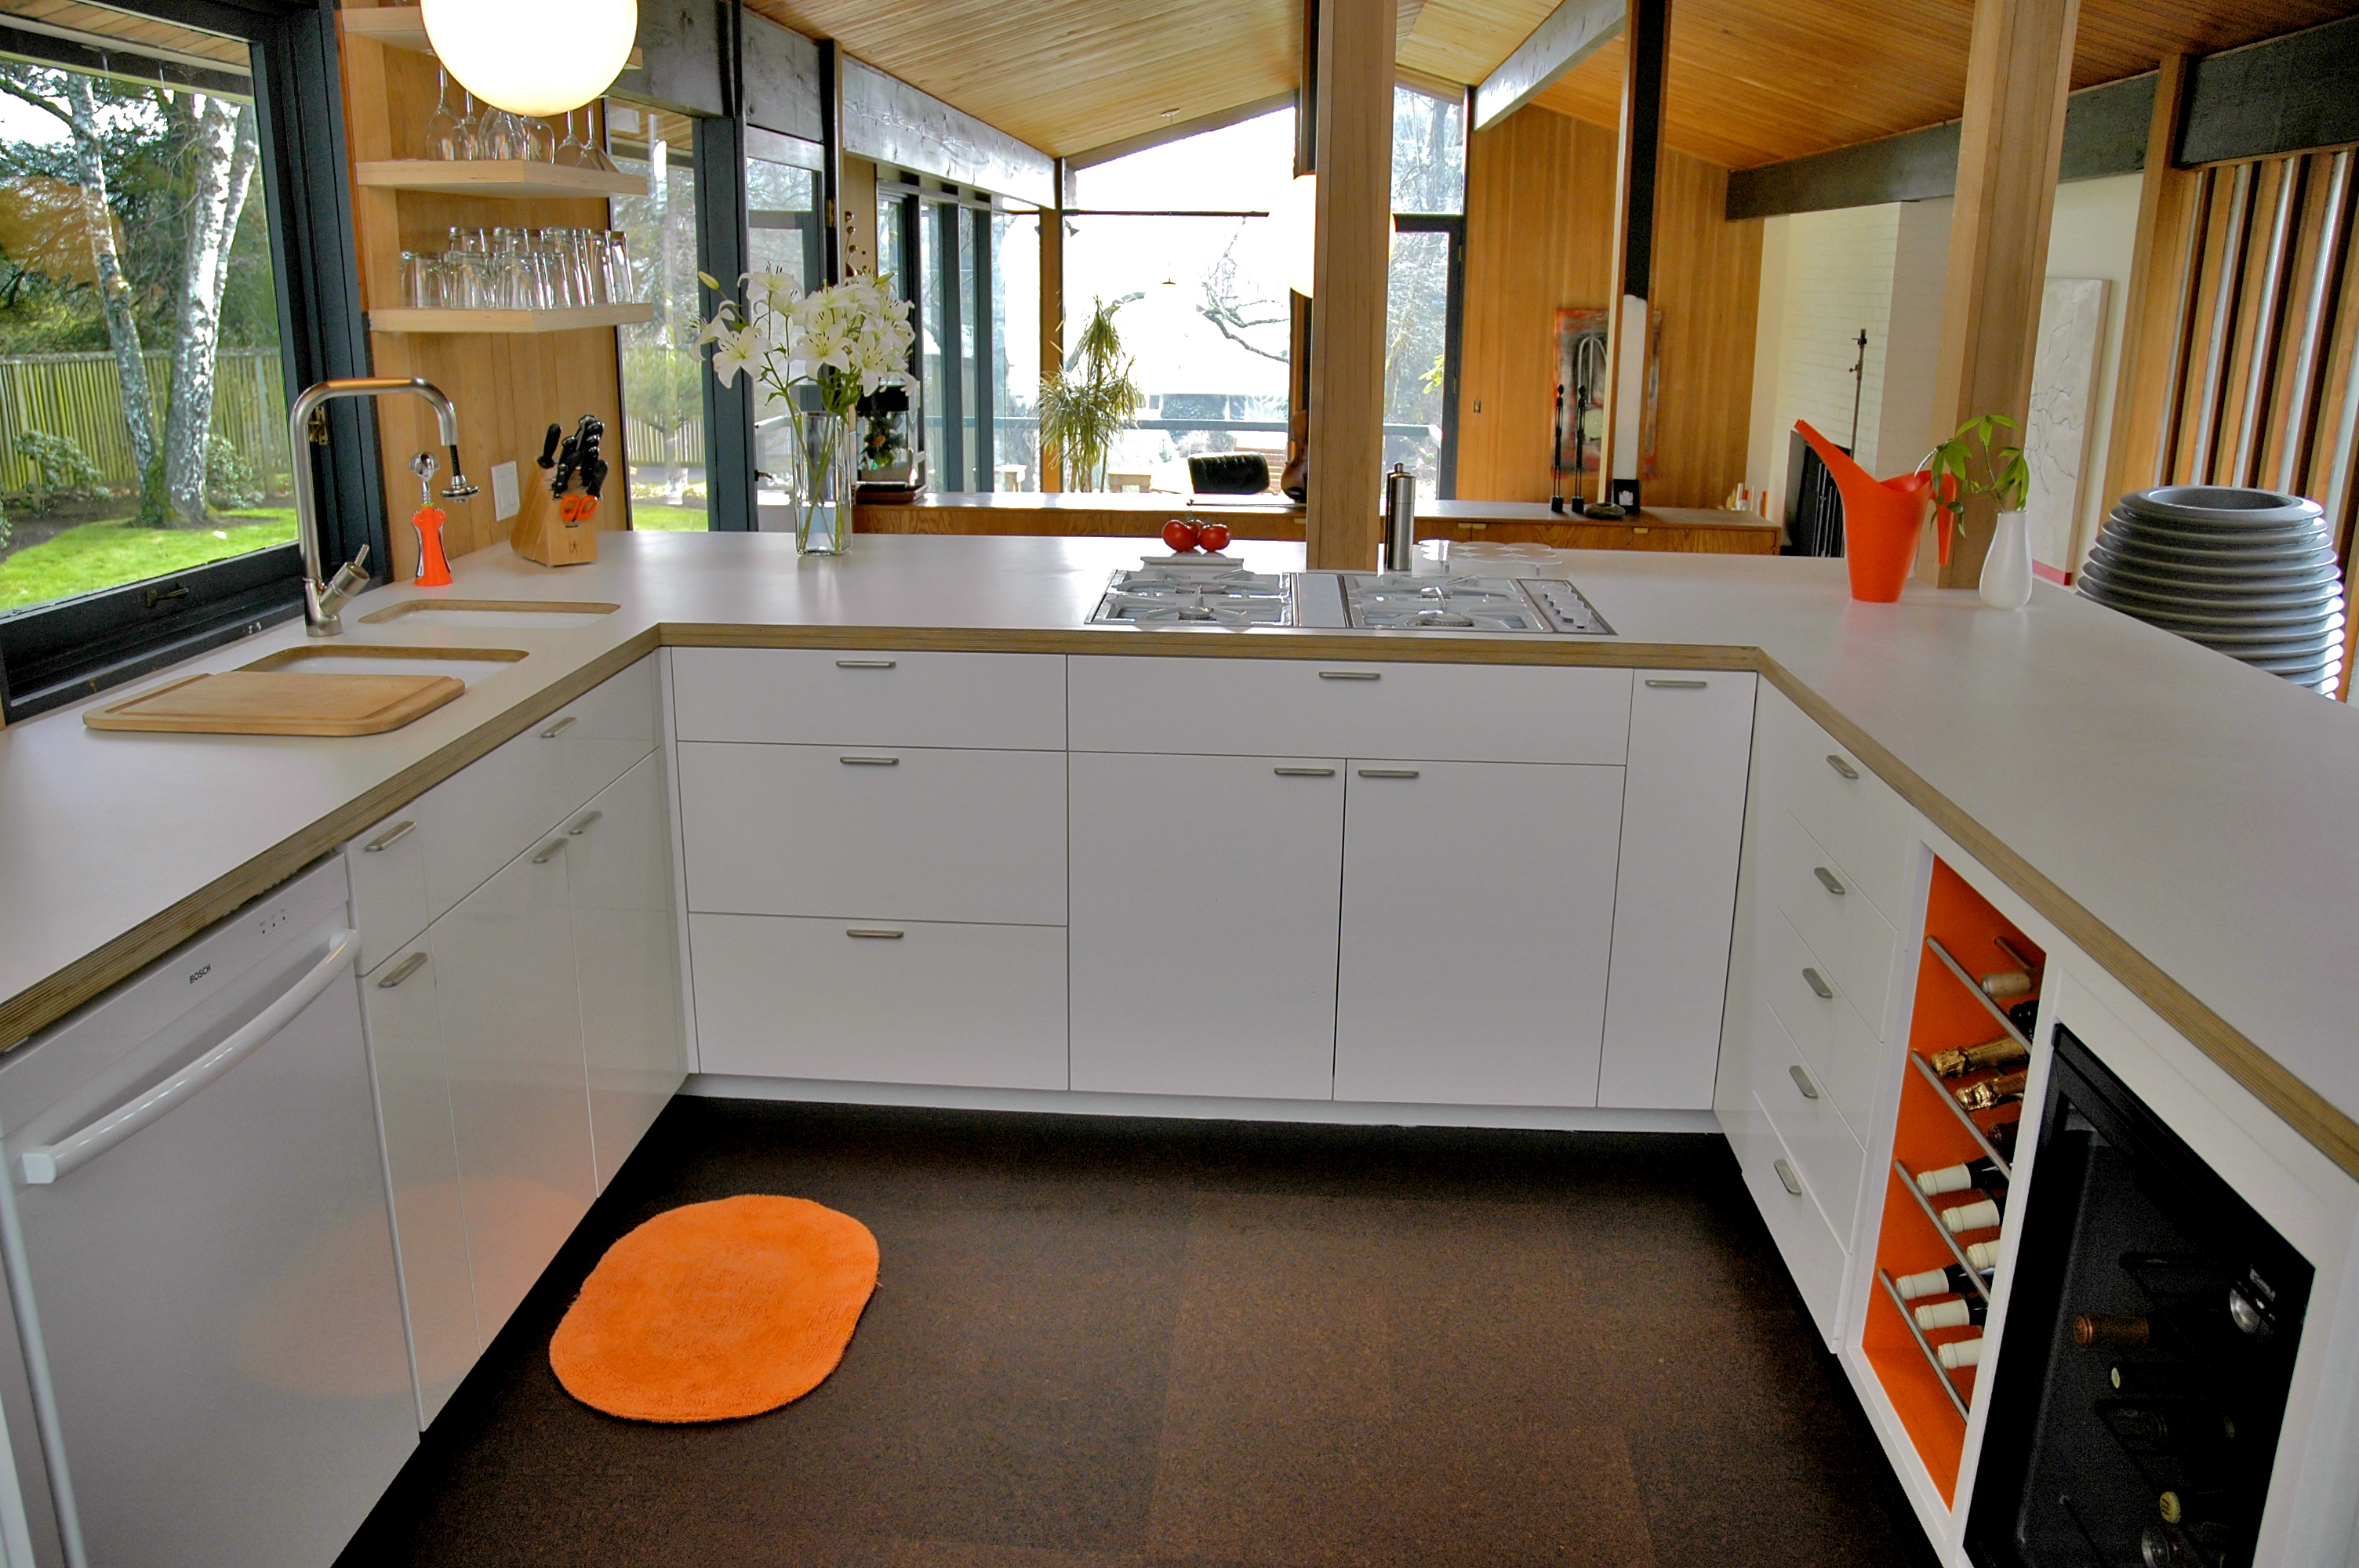 60S Kitchen Period Kitchens The '50S And '60S  Inside Arciform